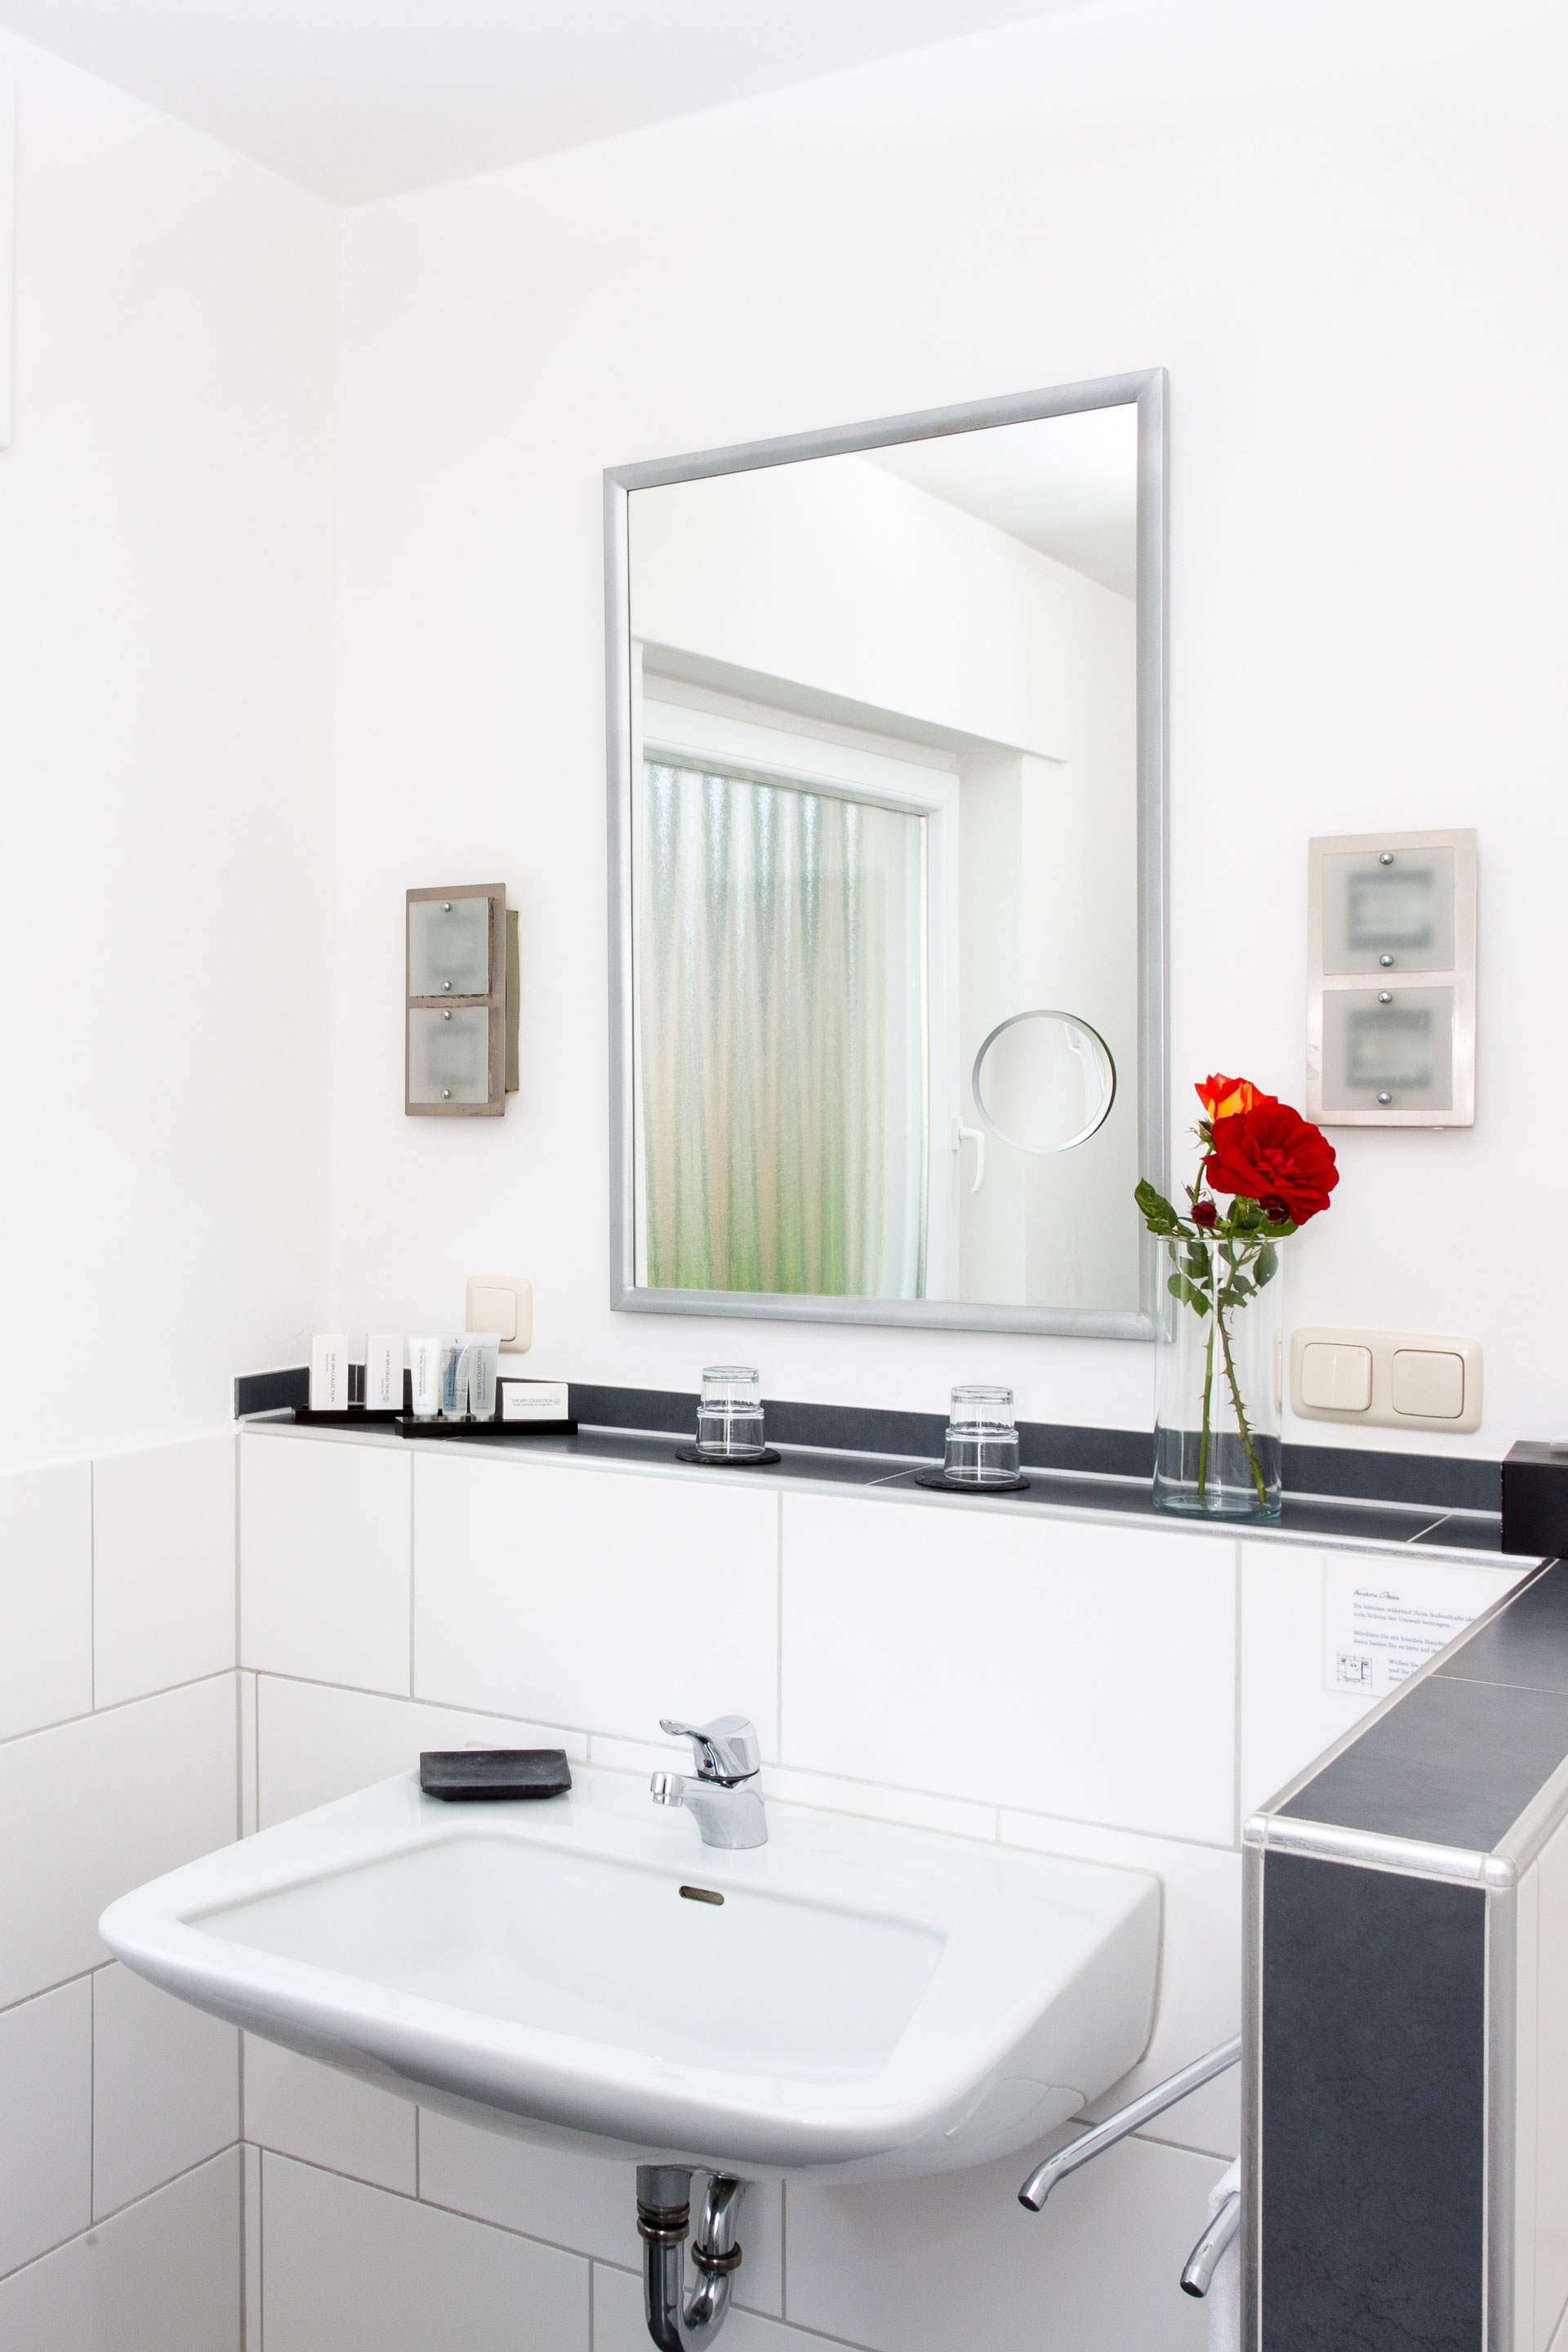 Hotel bathroom with mirror and sink